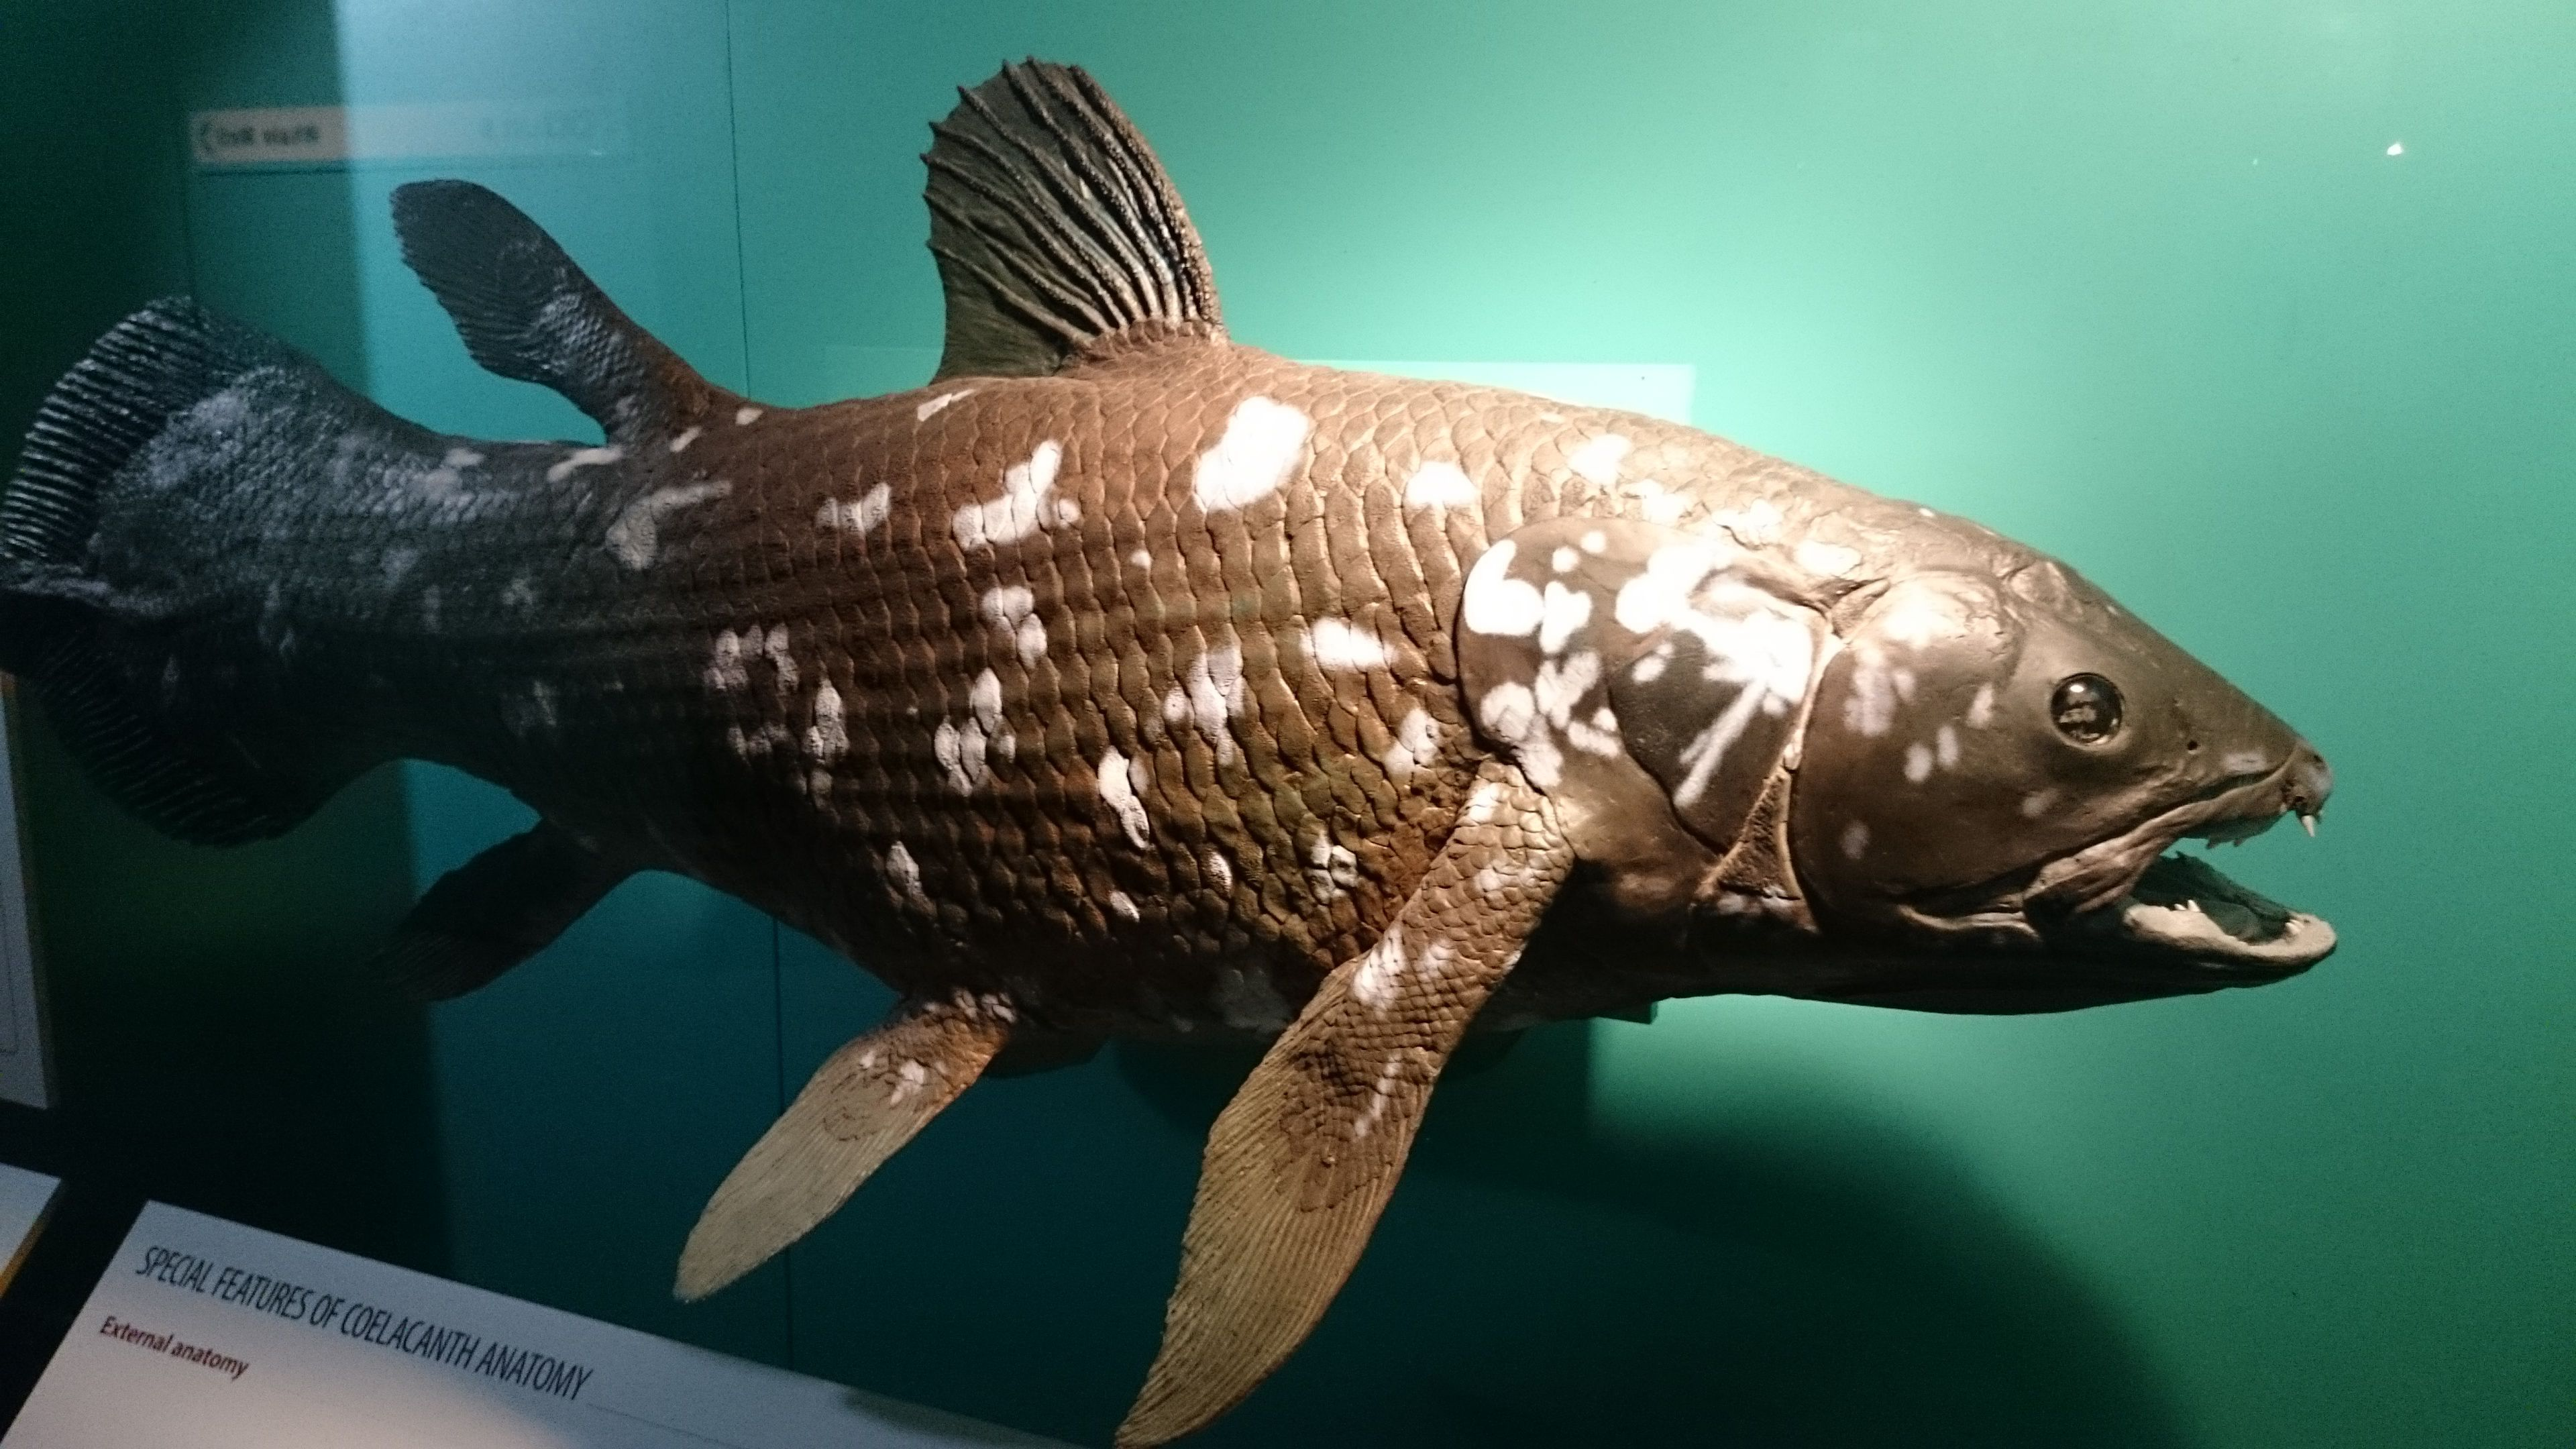 Meet Coelacanth, a Living Fish Thought to Be Extinct